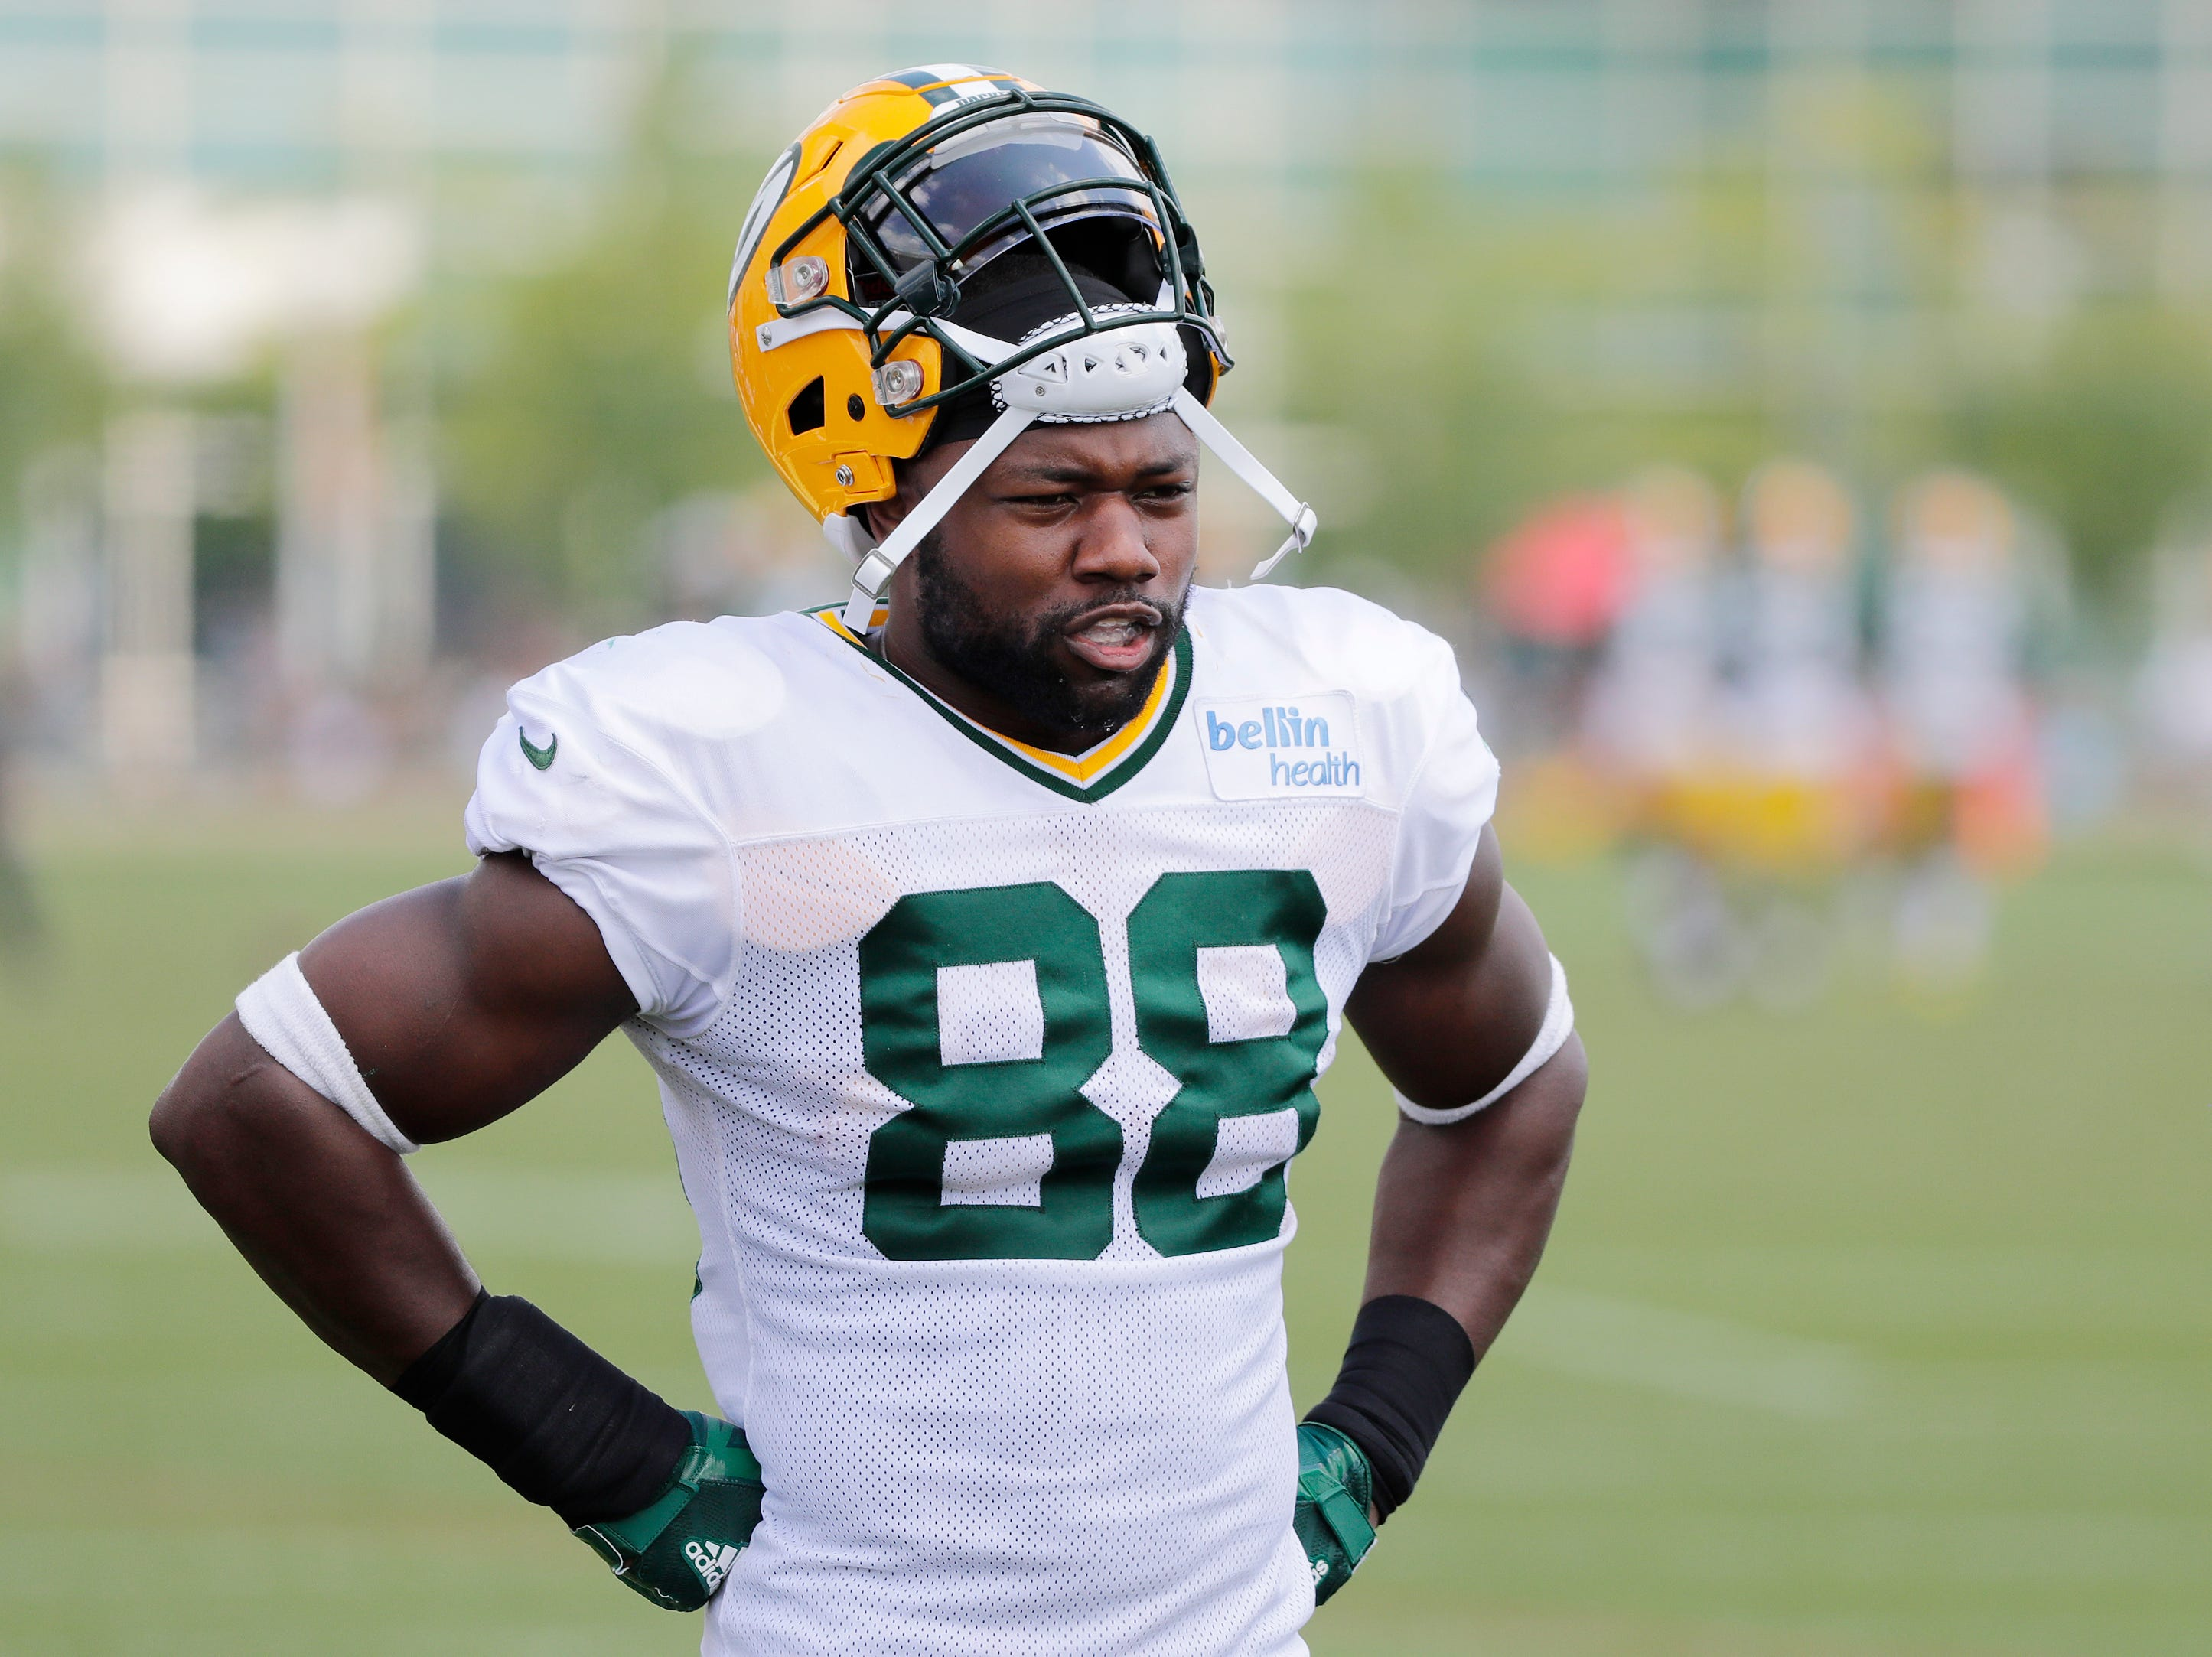 Green Bay Packers running back Ty Montgomery (88) during training camp practice at Ray Nitschke Field on Friday, August 3, 2018 in Ashwaubenon, Wis. 